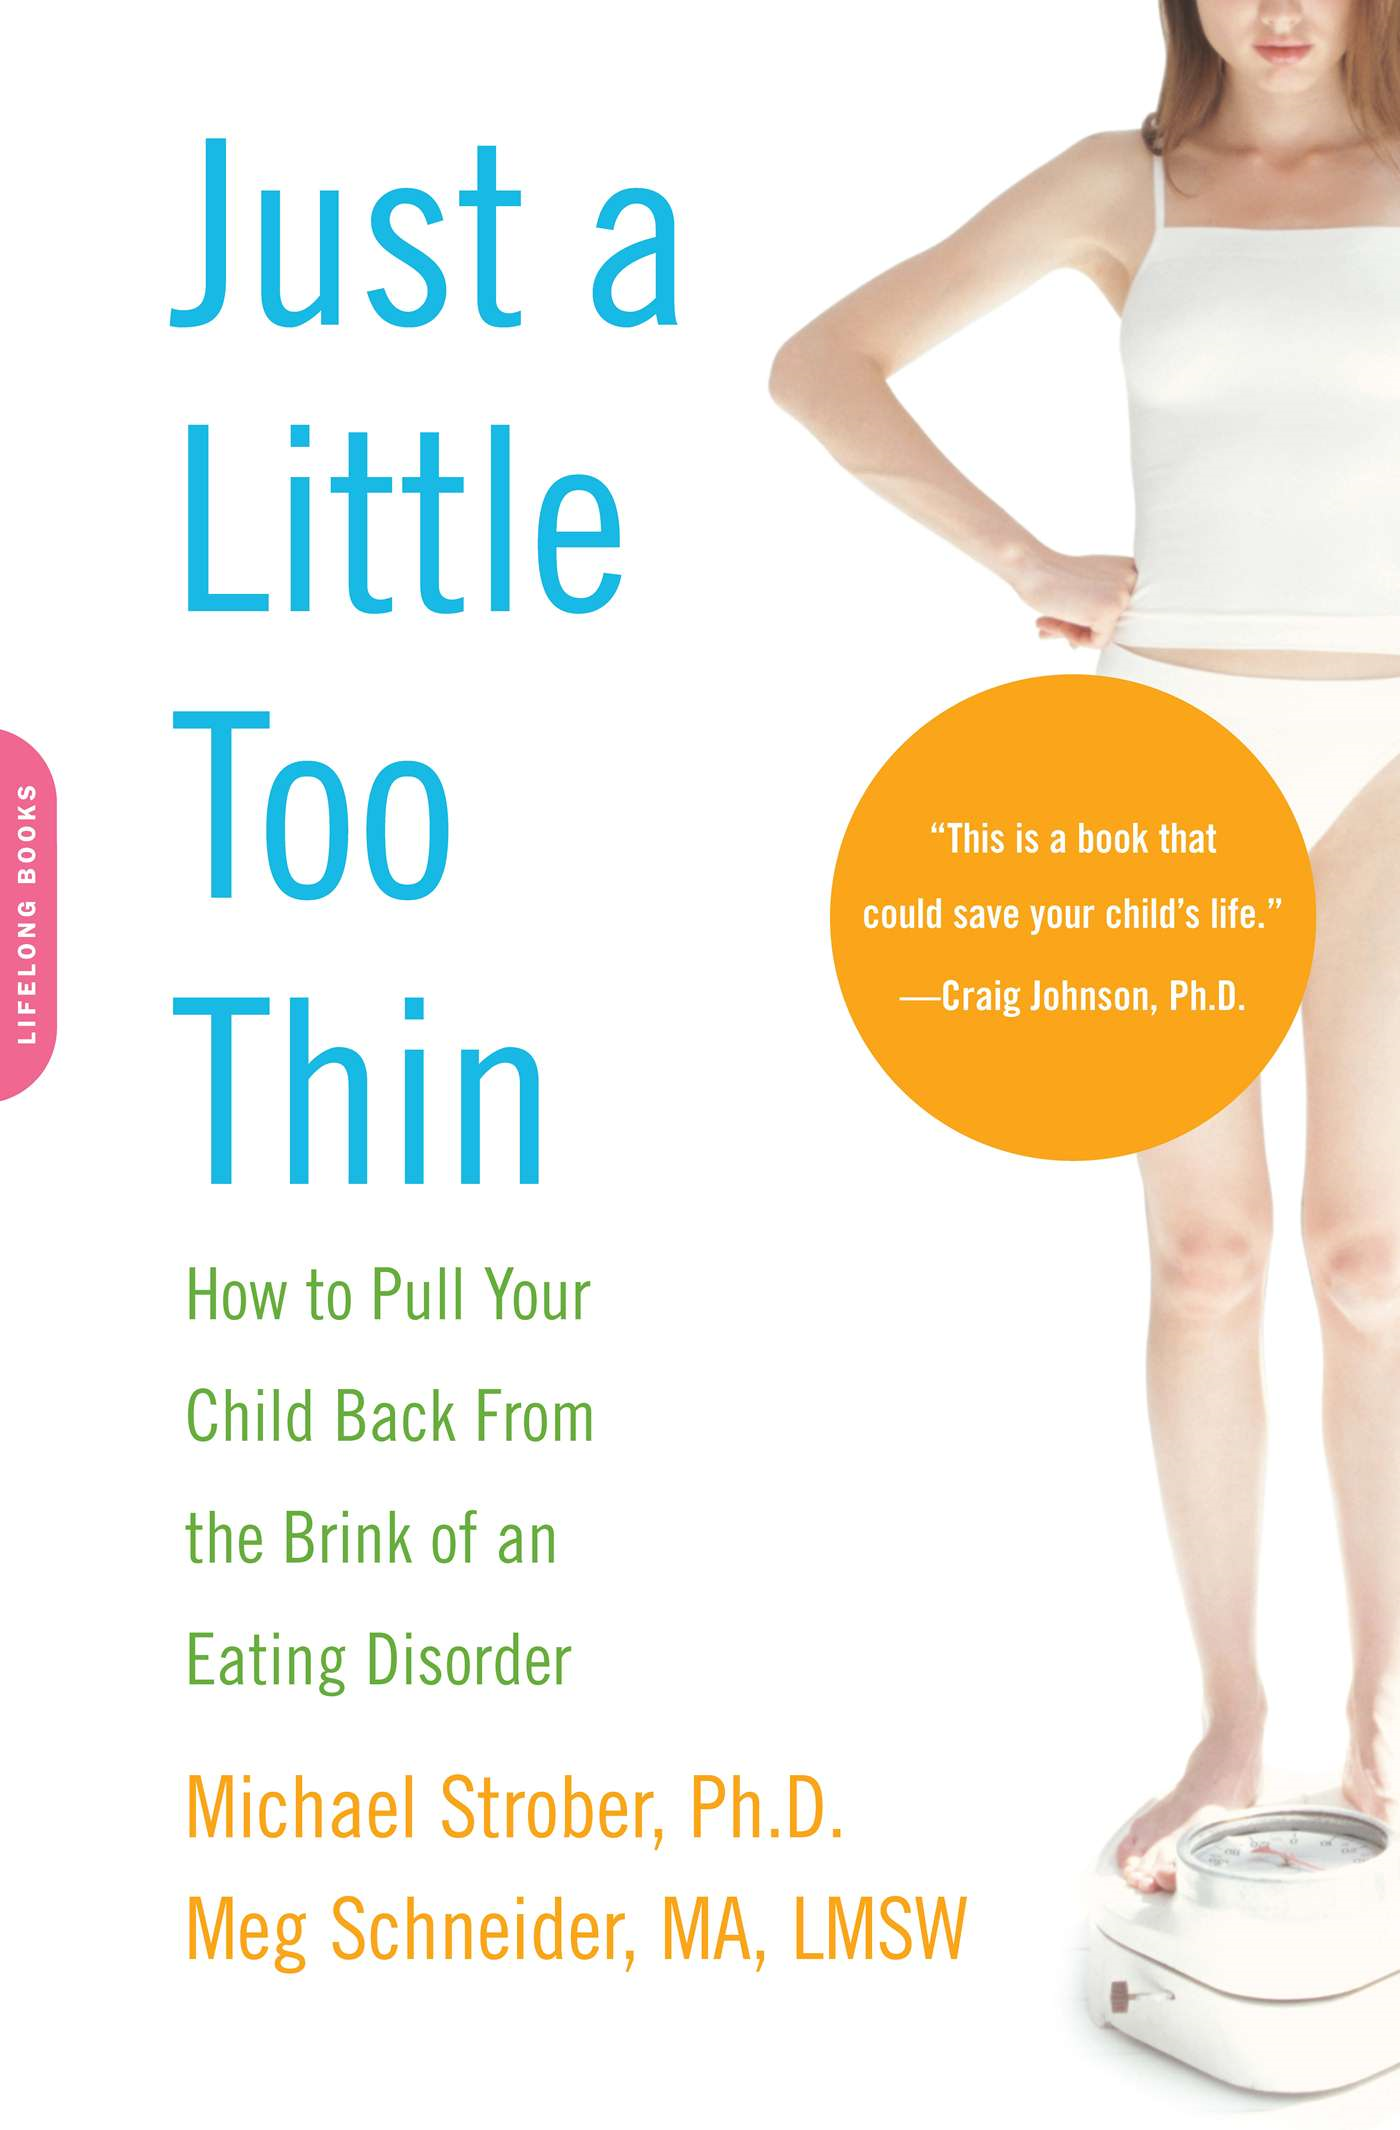 Just a Little Too Thin: How to Pull Your Child Back from the Brink of an Eating Disorder